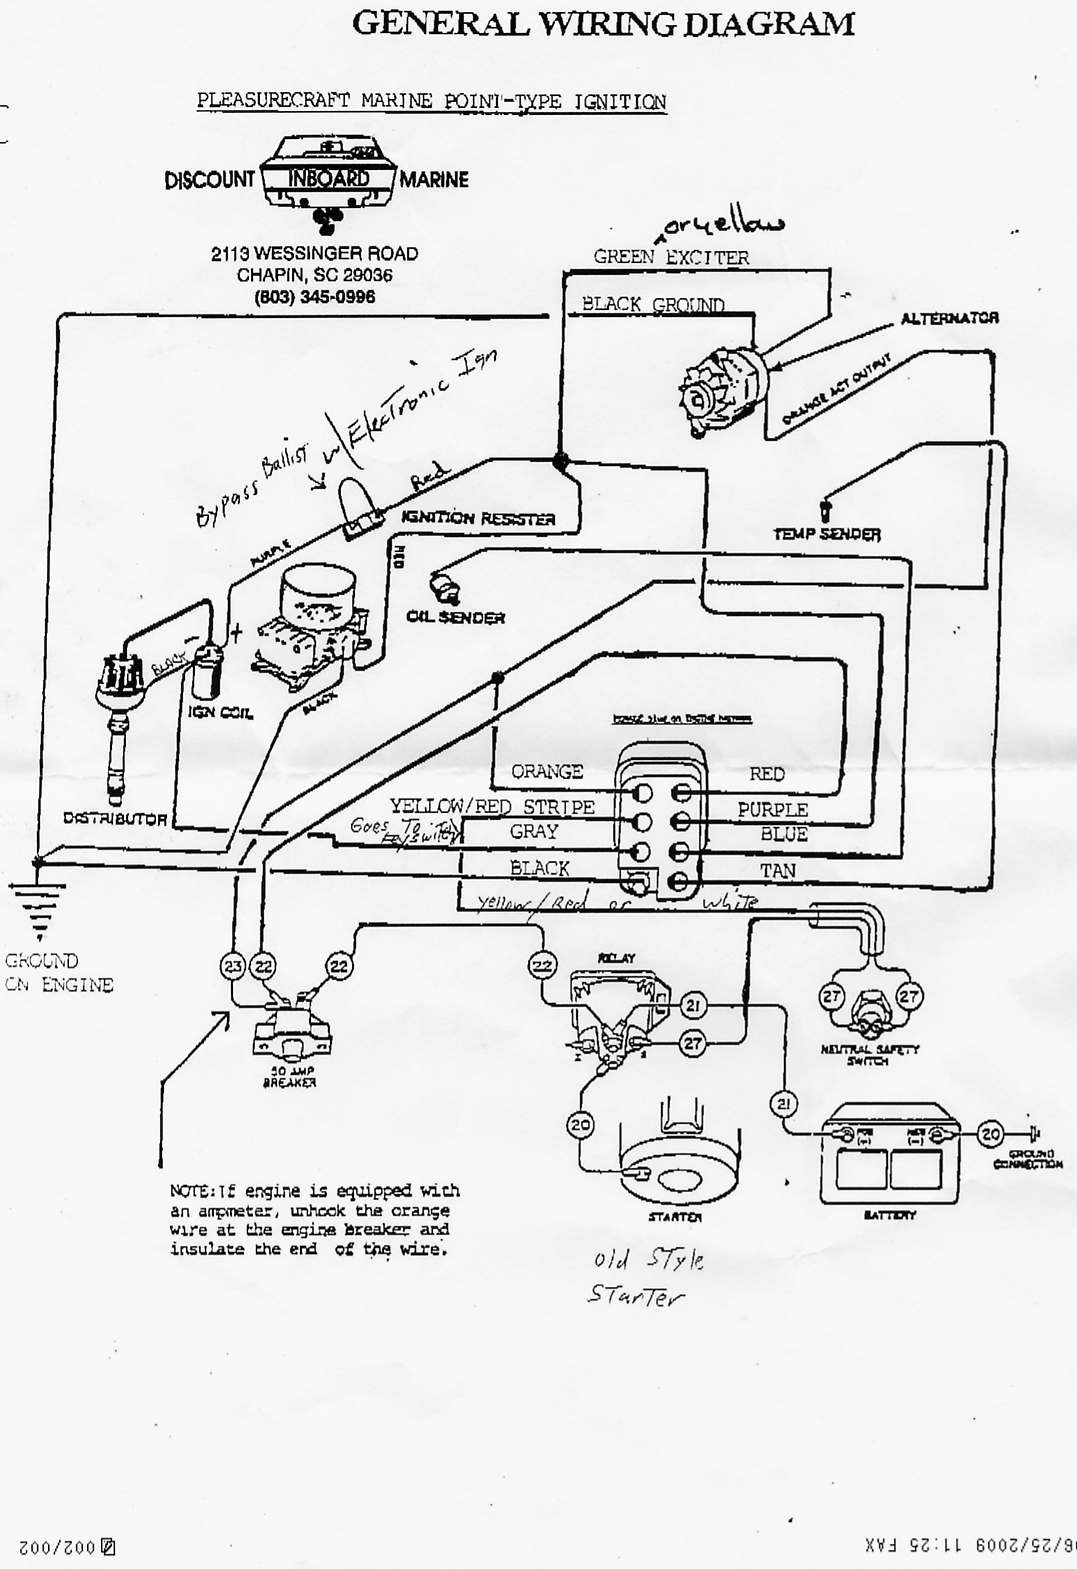 [ZV_7089] Electra Craft Boat Wiring Diagram For Schematic